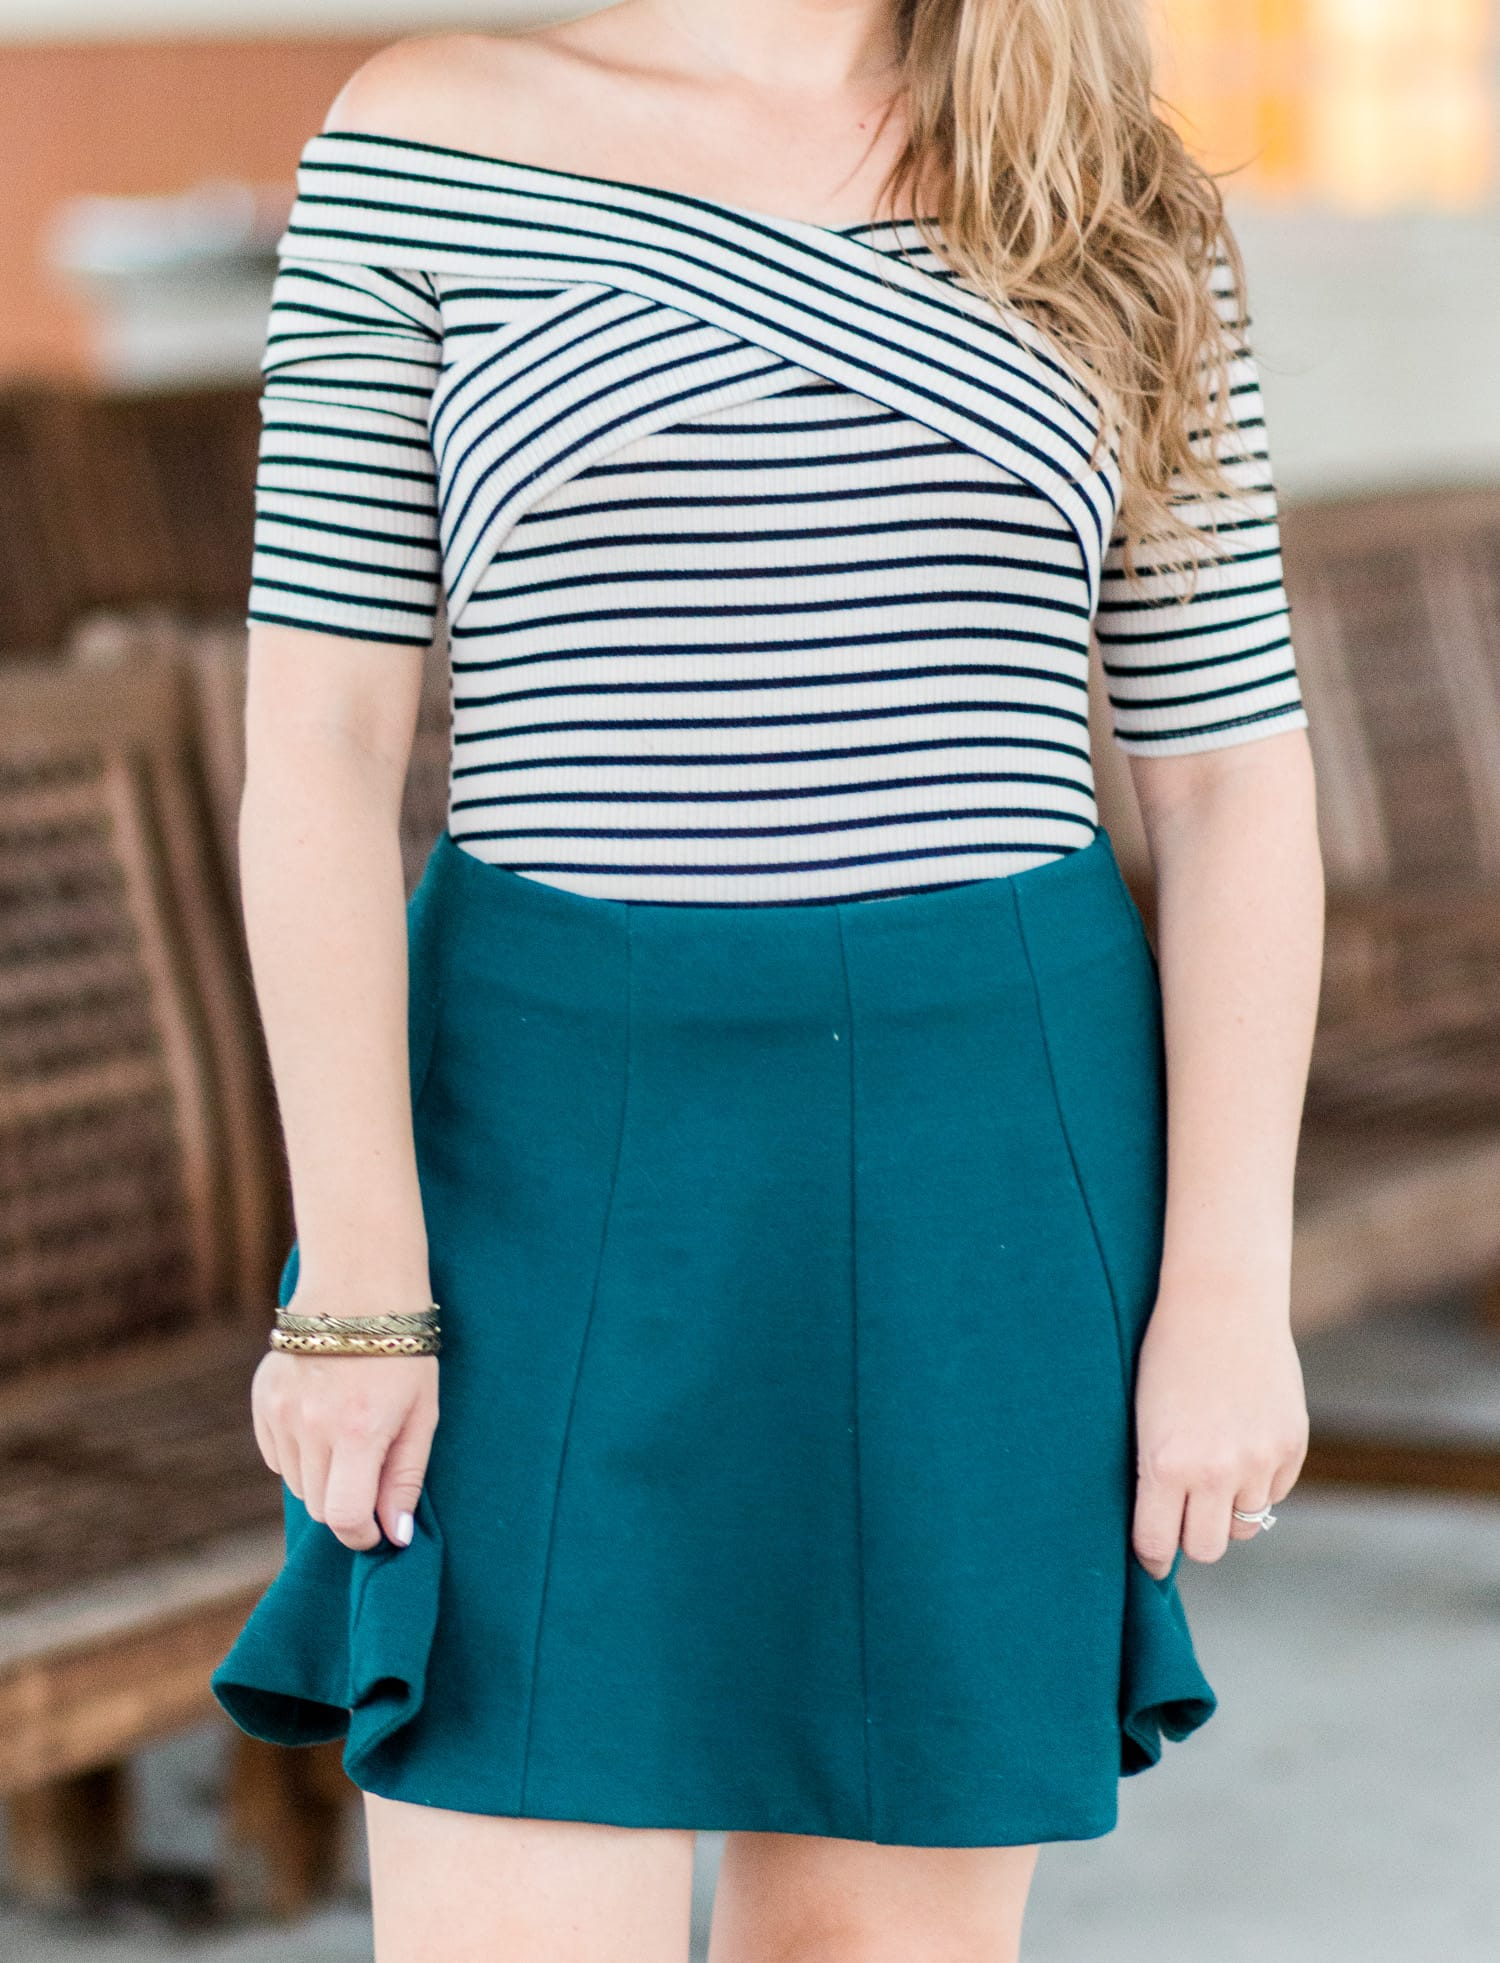 Striped off-the-shoulder top + hunter green skater skirt + distressed gold bracelets styled in a cute fall outfit idea by style blogger Ashley Brooke Nicholas